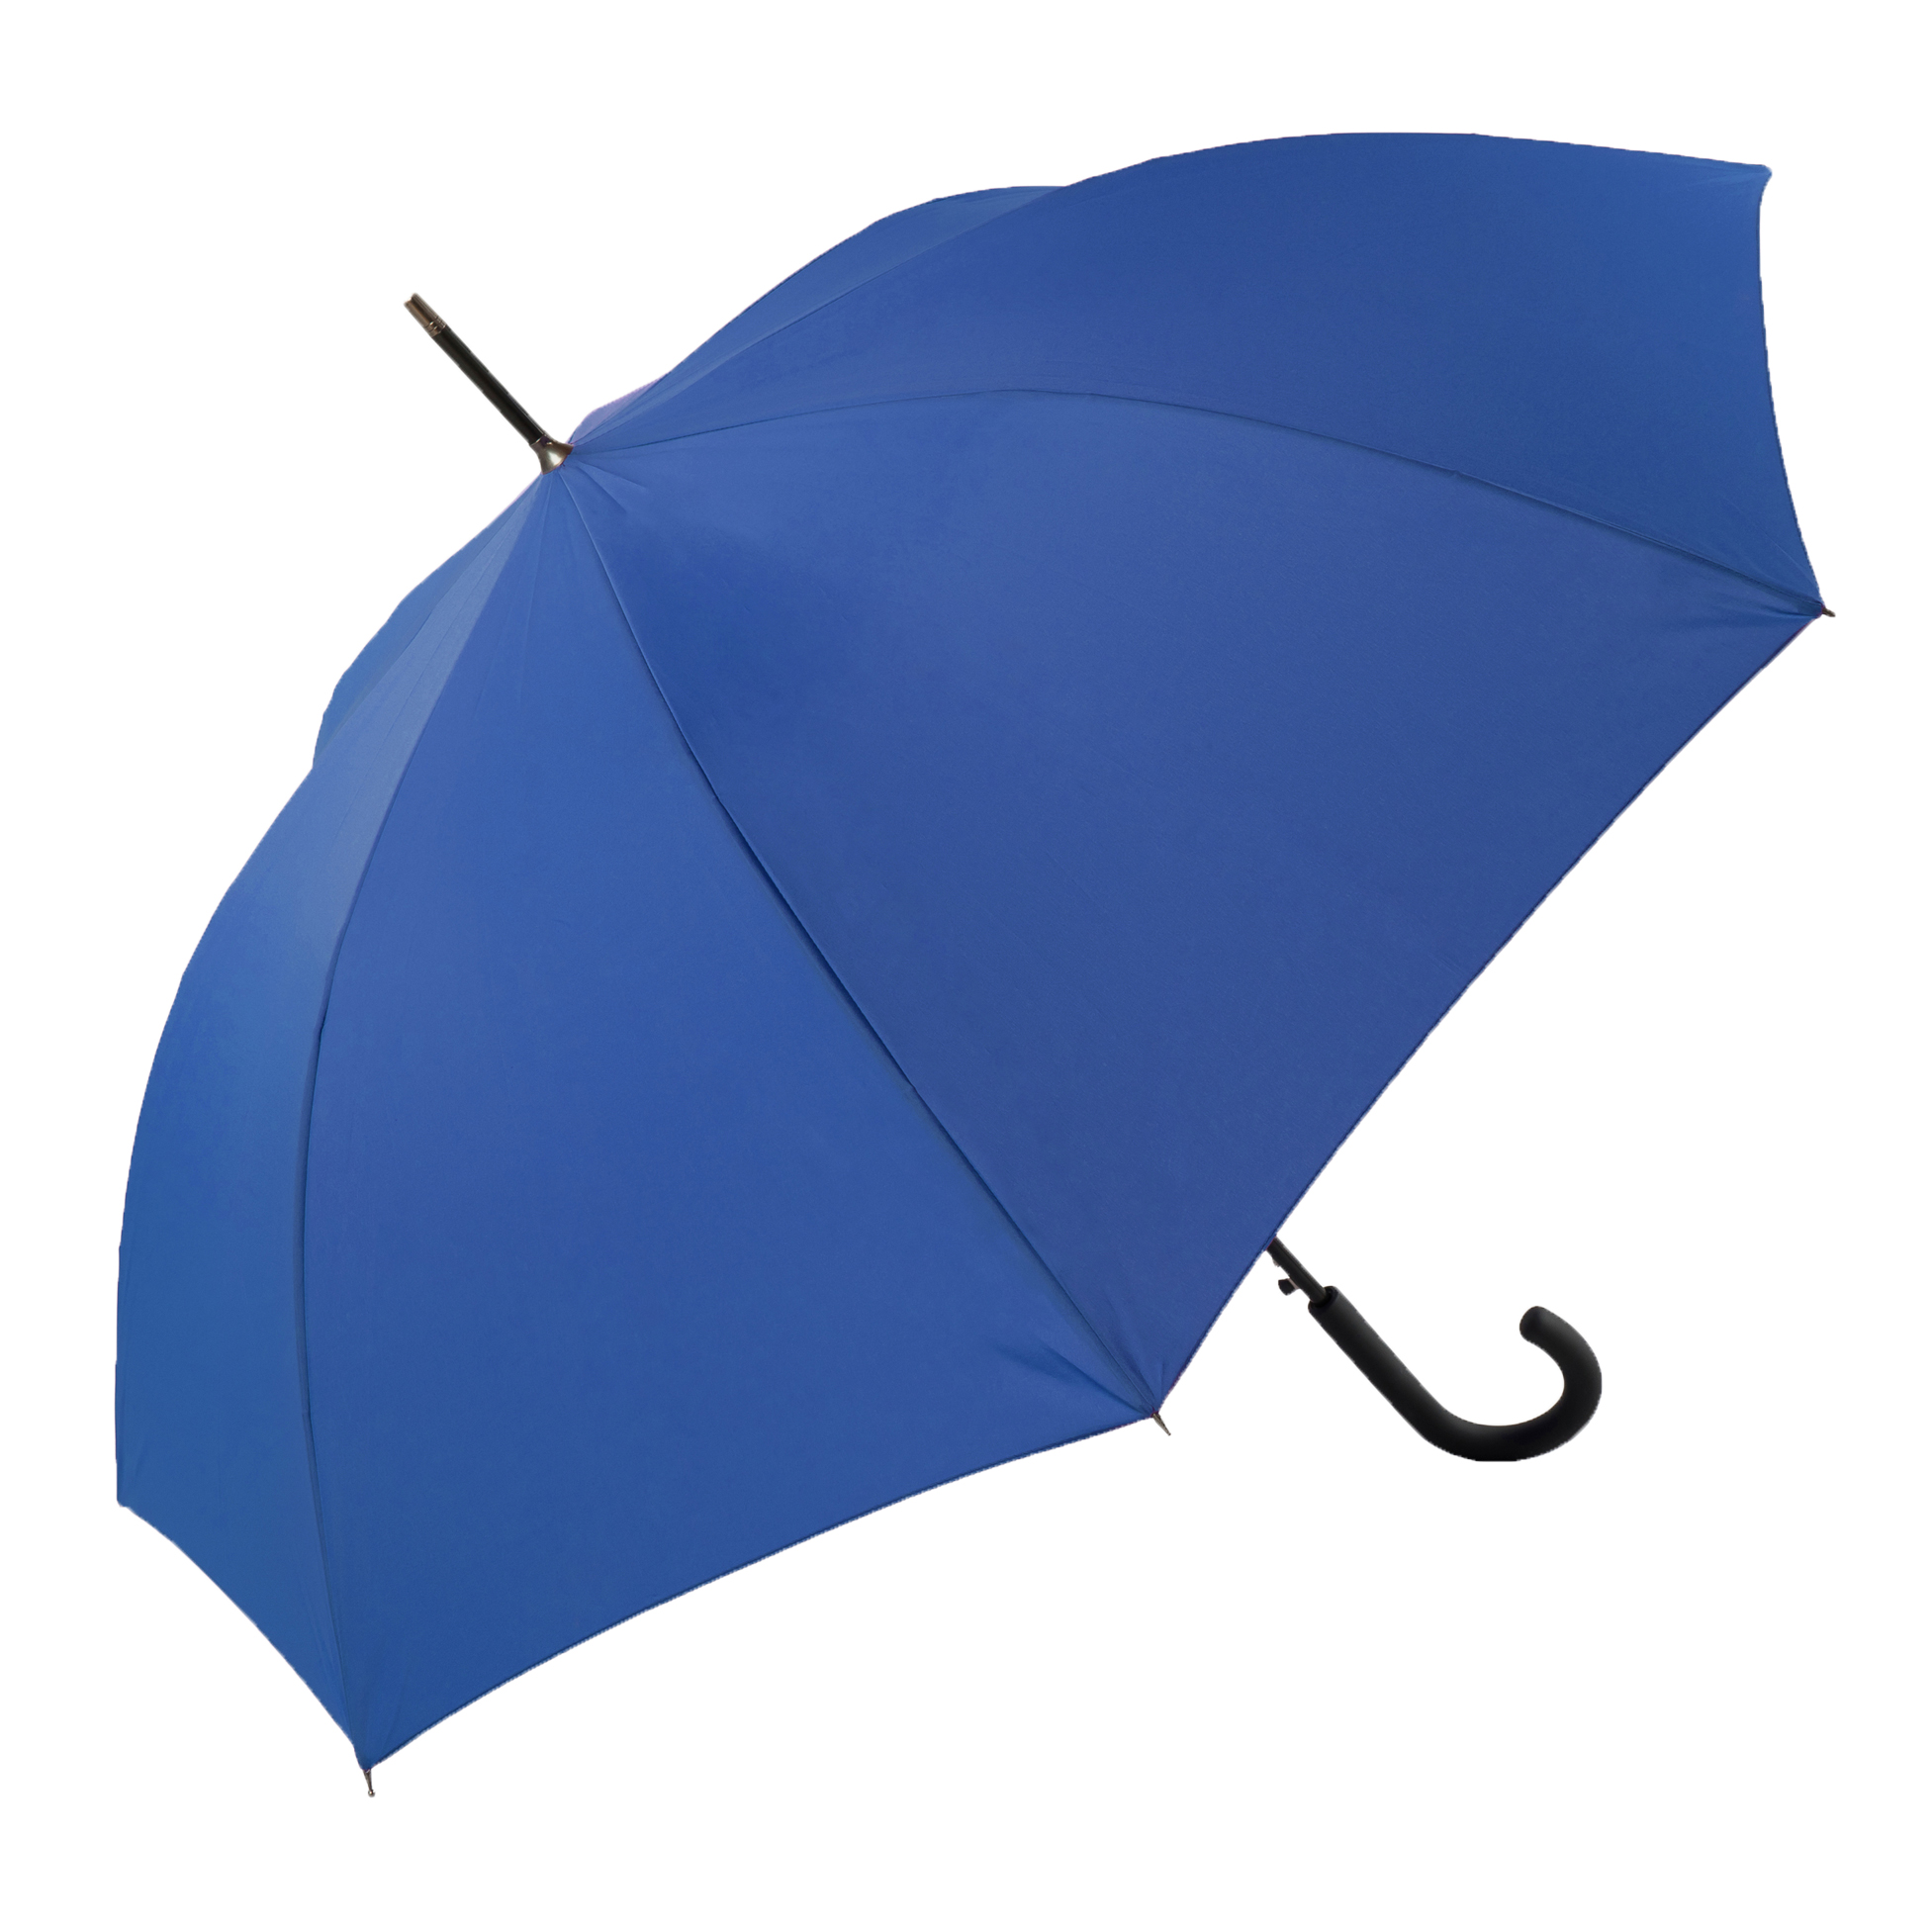 Unisex Bright & Colourful Blue Walking Umbrella (31712)